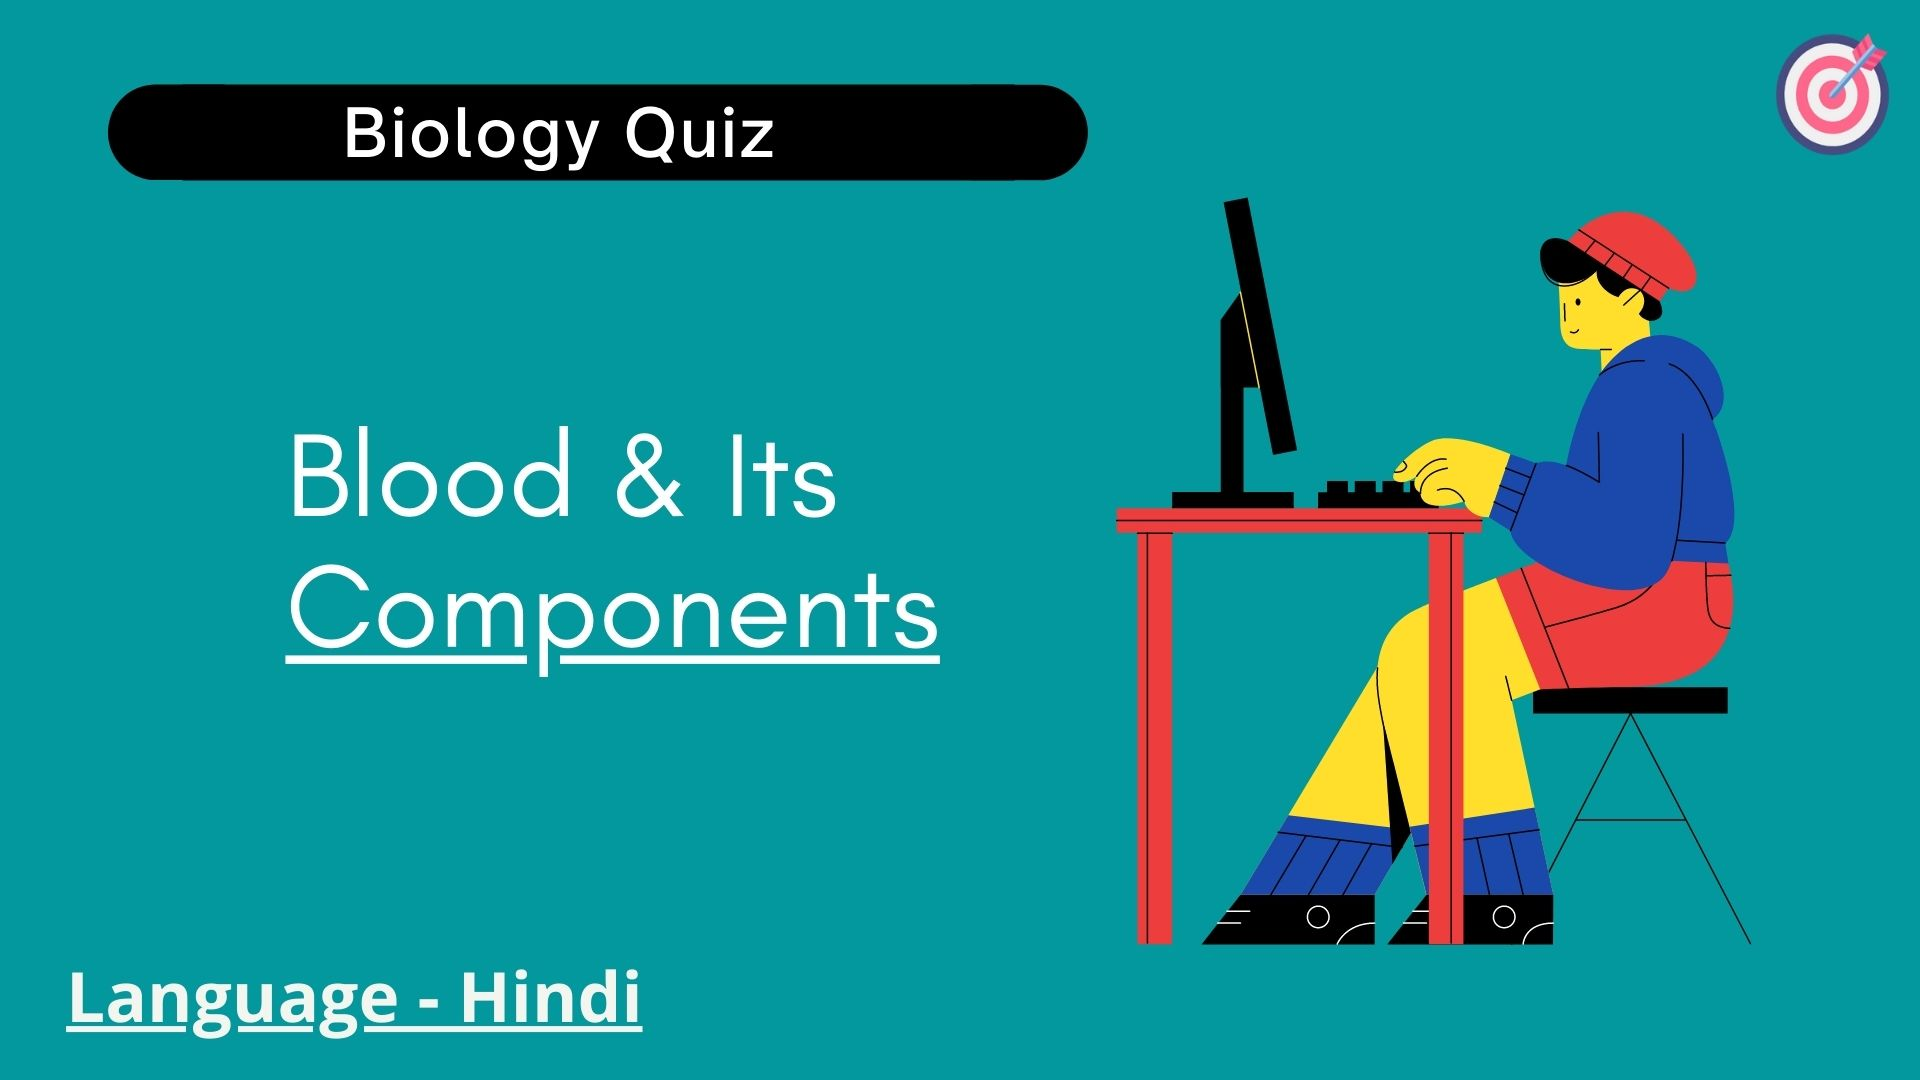 Biology Quiz : Blood & Its Components